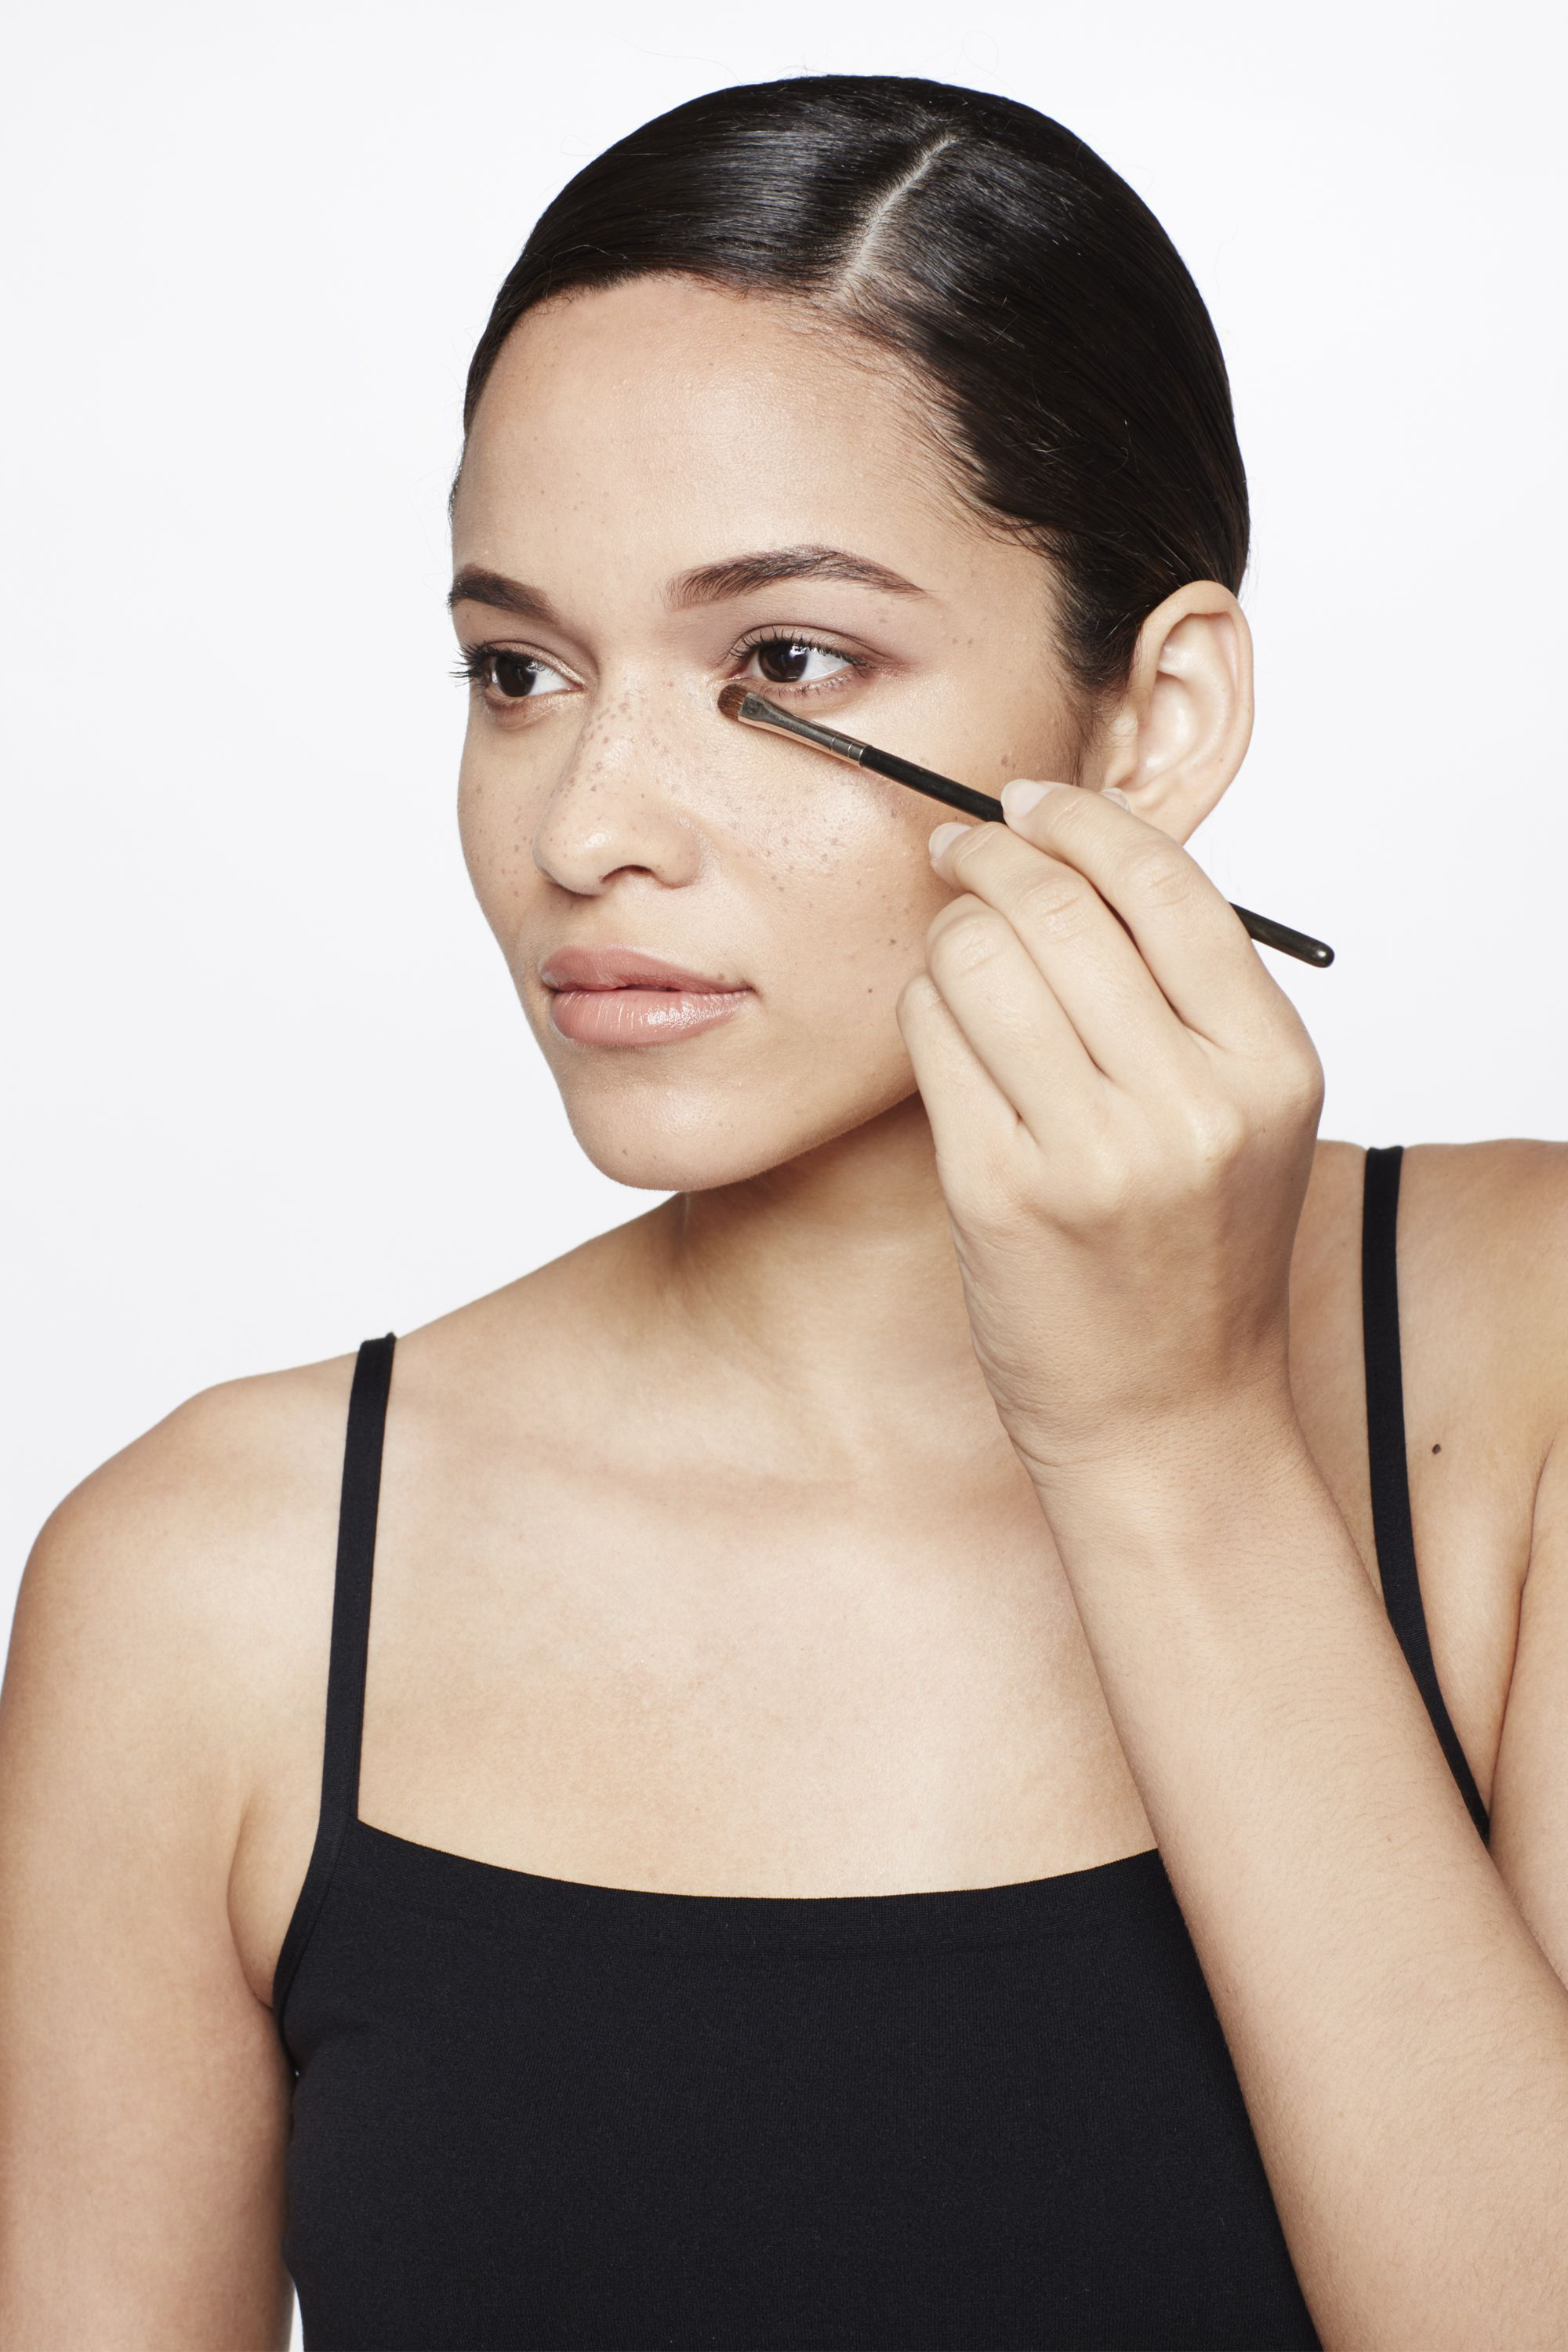 """<p>Maybe you tossed and turned all night—and whether it was for a good reason (yes, girl) or a bad one (dammit)—it still doesn't make for a great look. Whatever's behind your tired eyes, here's an easy way to wake them up. Using a small flat eyeliner brush, apply a powder highlighter, like the lightest shade from <a href=""""http://www.lorealparisusa.com/en/products/makeup/face/blush/true-match-lumi-powder-glow-illuminator.aspx"""" target=""""_blank"""">L'Oréal Paris True Match Lumi Powder Glow Illuminator</a> quad, following the """"V"""" from the inner corner of the eye to the tear duct, says Jose. </p>"""